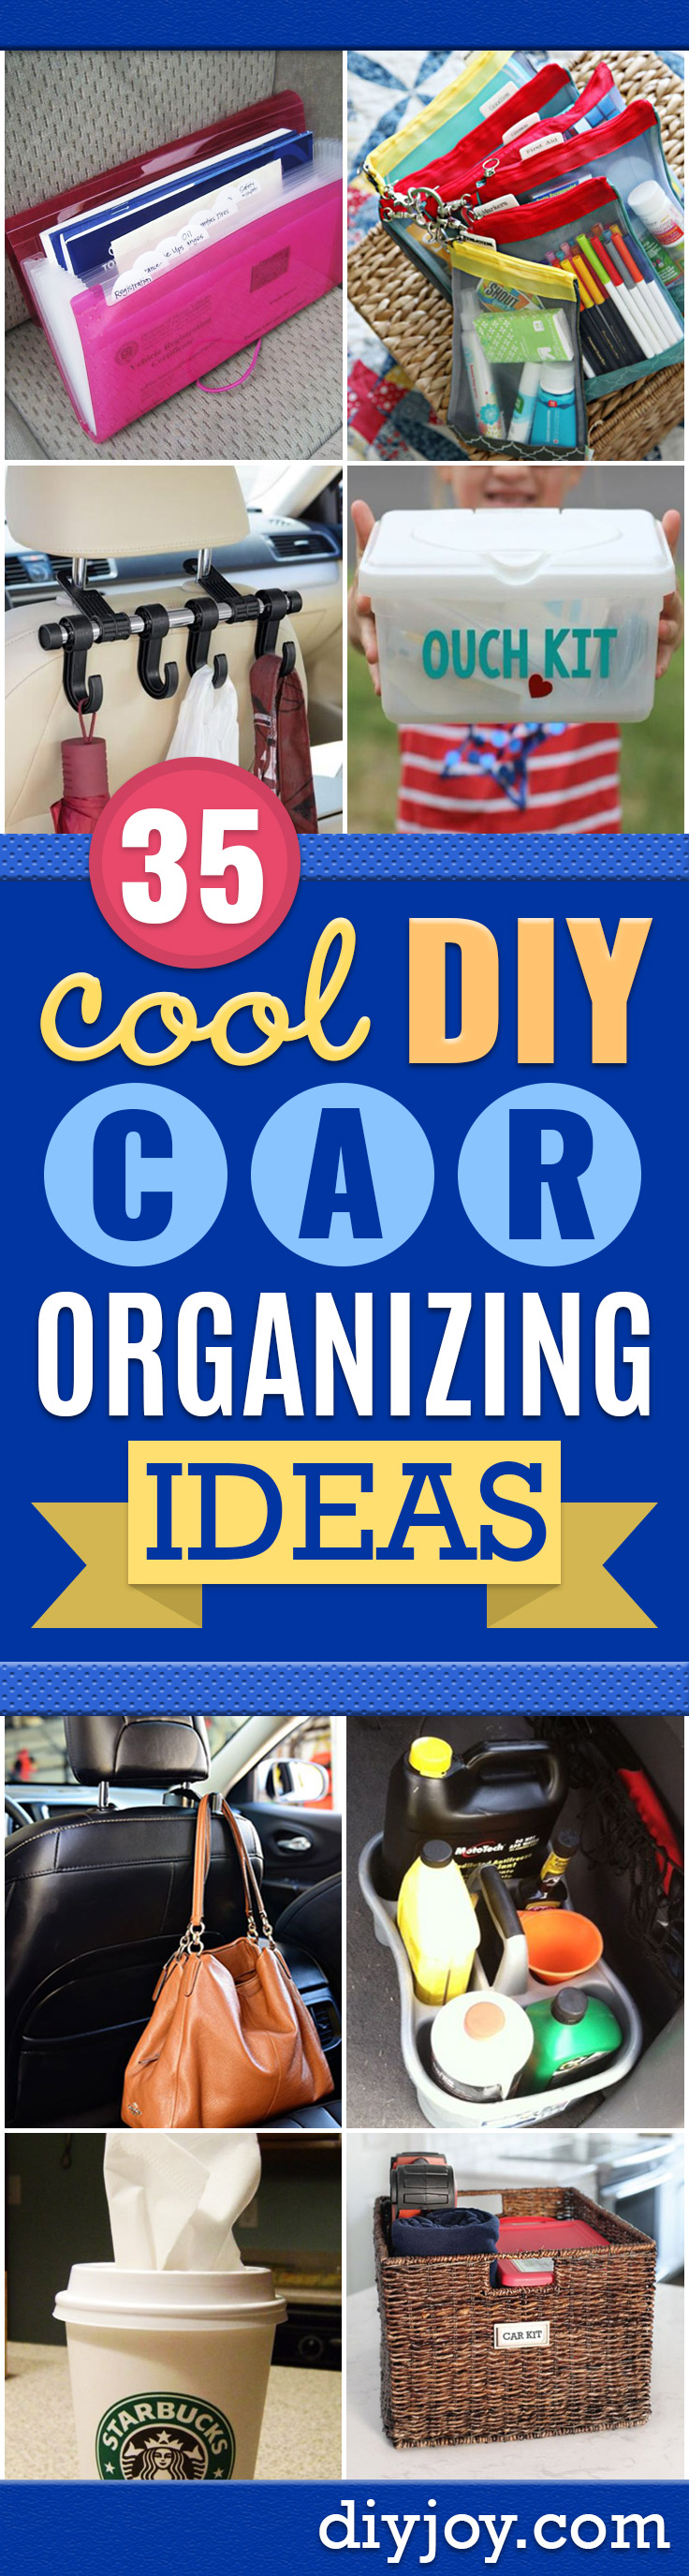 Car Organization Ideas - DIY Tips and Tricks for Organizing Cars - Dollar Store Storage Projects for Mom, Kids and Teens - Keep Your Car, Truck or SUV Clean On A Road Trip With These solutions for interiors and Trunk, Front Seat - Do It Yourself Caddy and Easy, Cool Lifehacks http://diyjoy.com/car-organizing-ideas